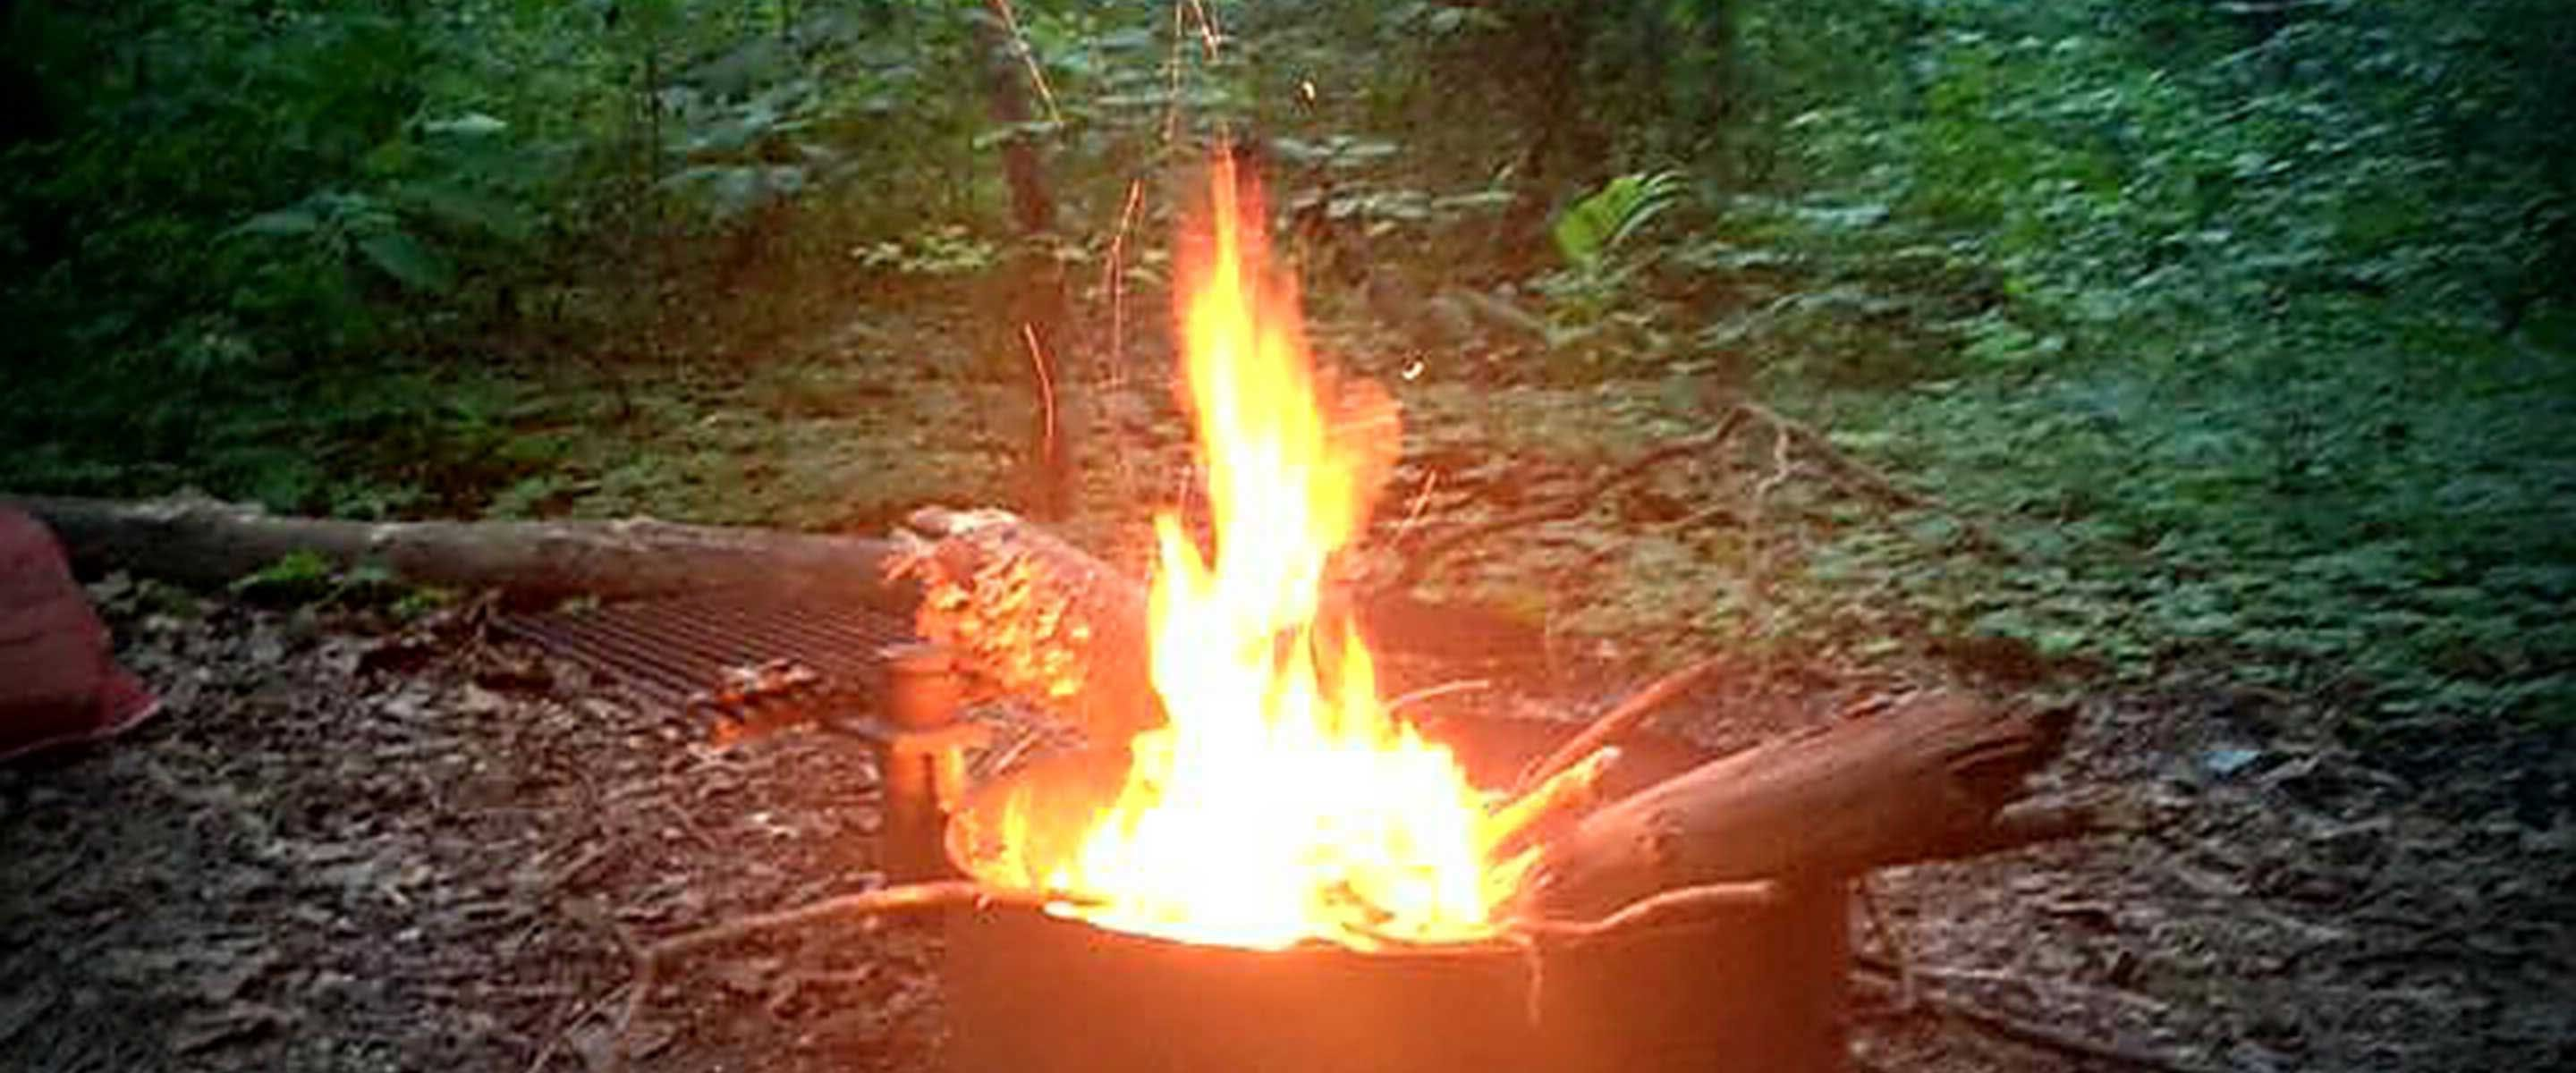 photo of warm orange campfire